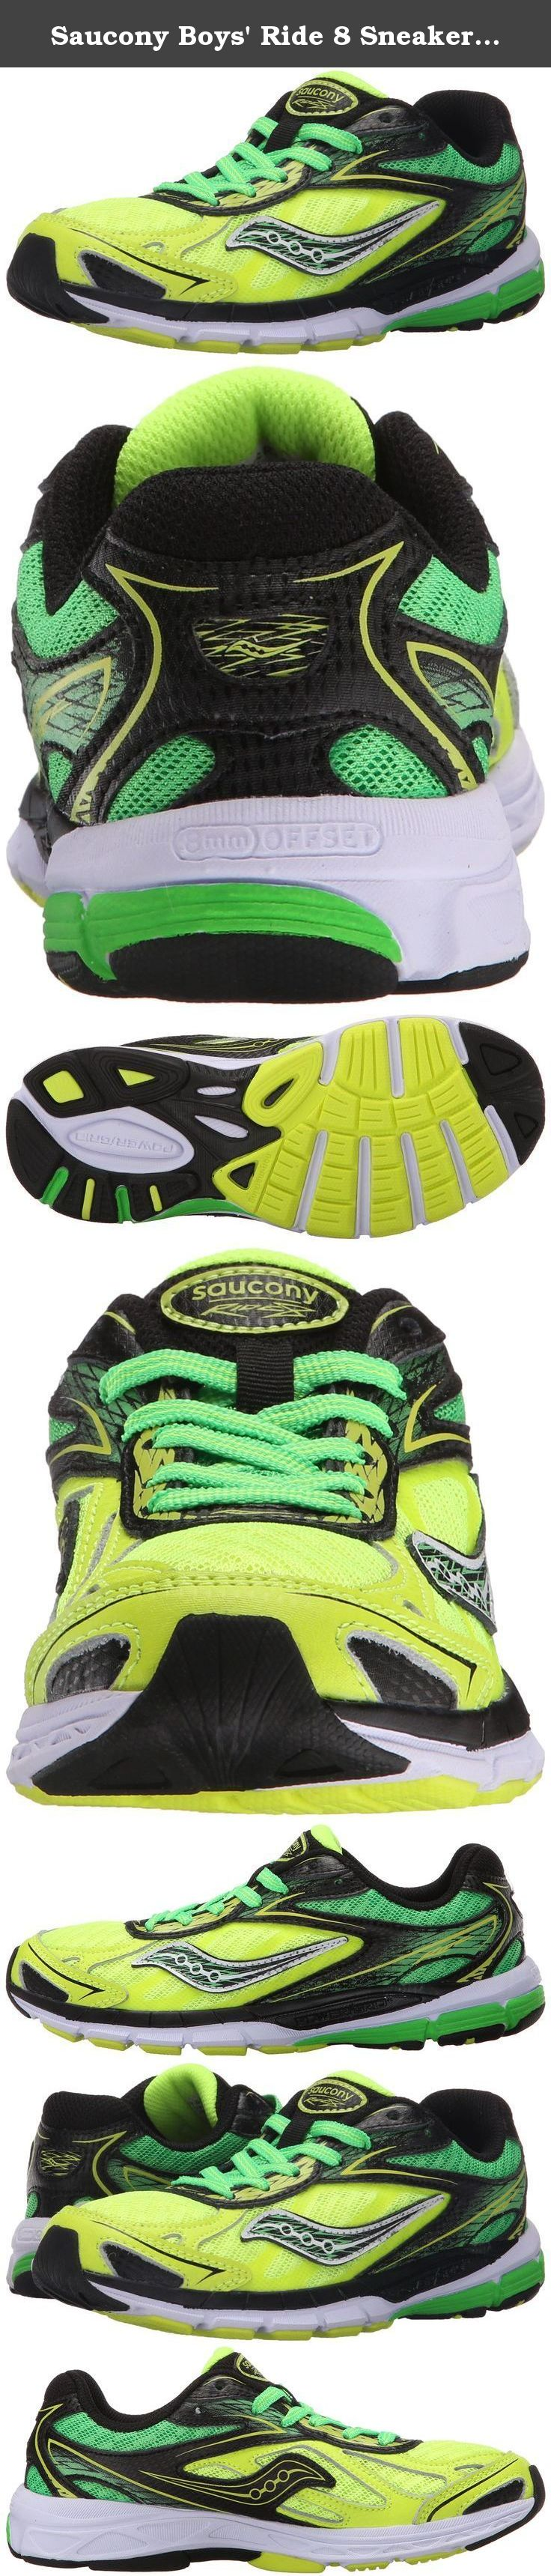 Saucony Boys' Ride 8 Sneaker (Little Kid/Big Kid). Want the best in running technology for your 5k or track running kid? The Saucony Ride provides the best features and benefits from the Adult Saucony Ride, but in kid right colors.